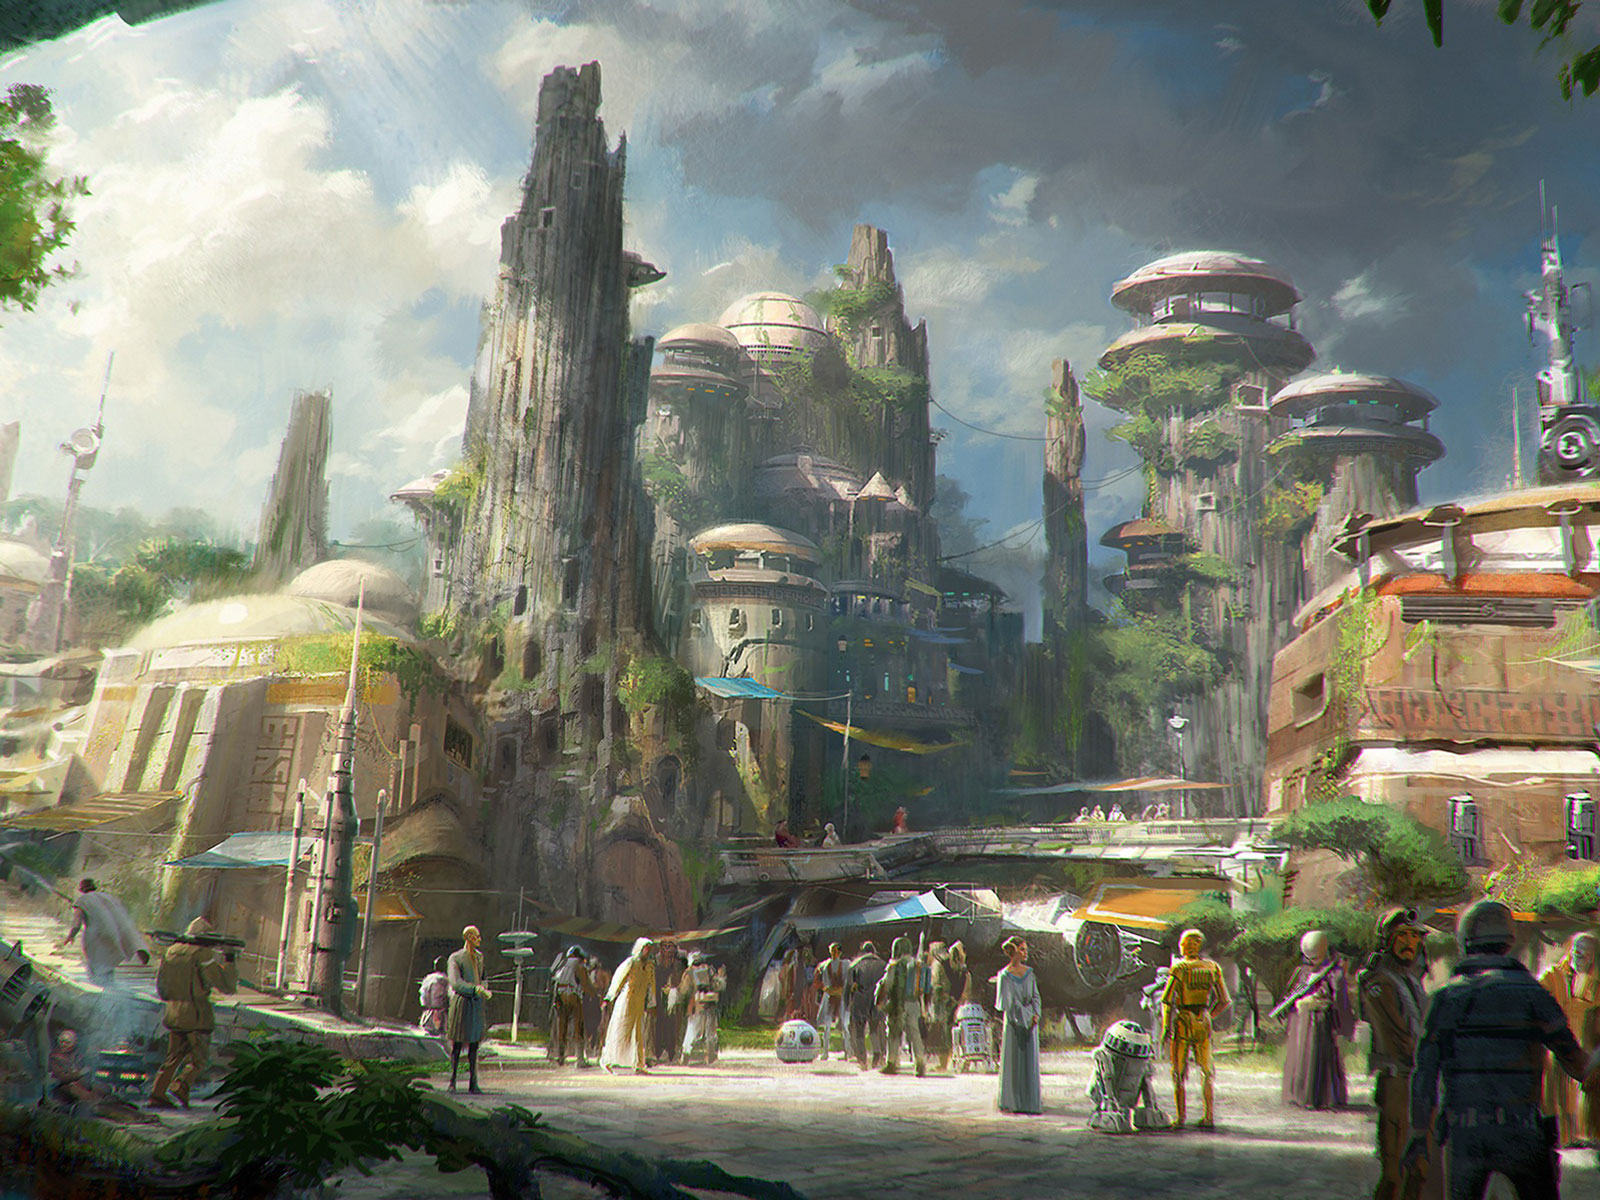 All of the Otherworldly Food Coming to Disney's Star Wars: Galaxy's Edge